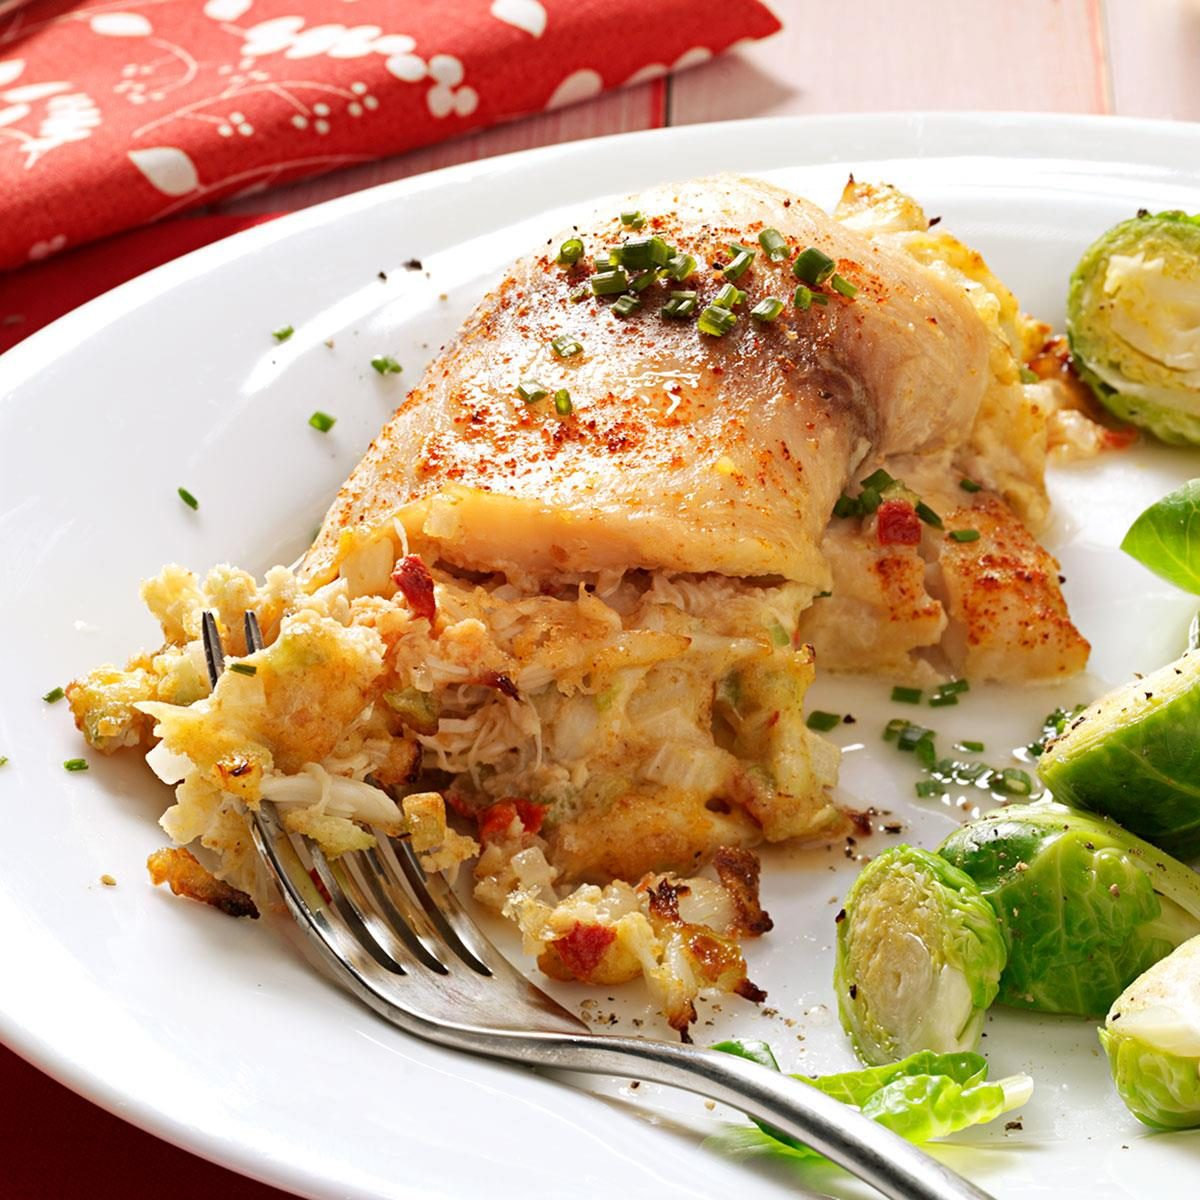 Crab stuffed tilapia recipe taste of home for Crab stuffed fish